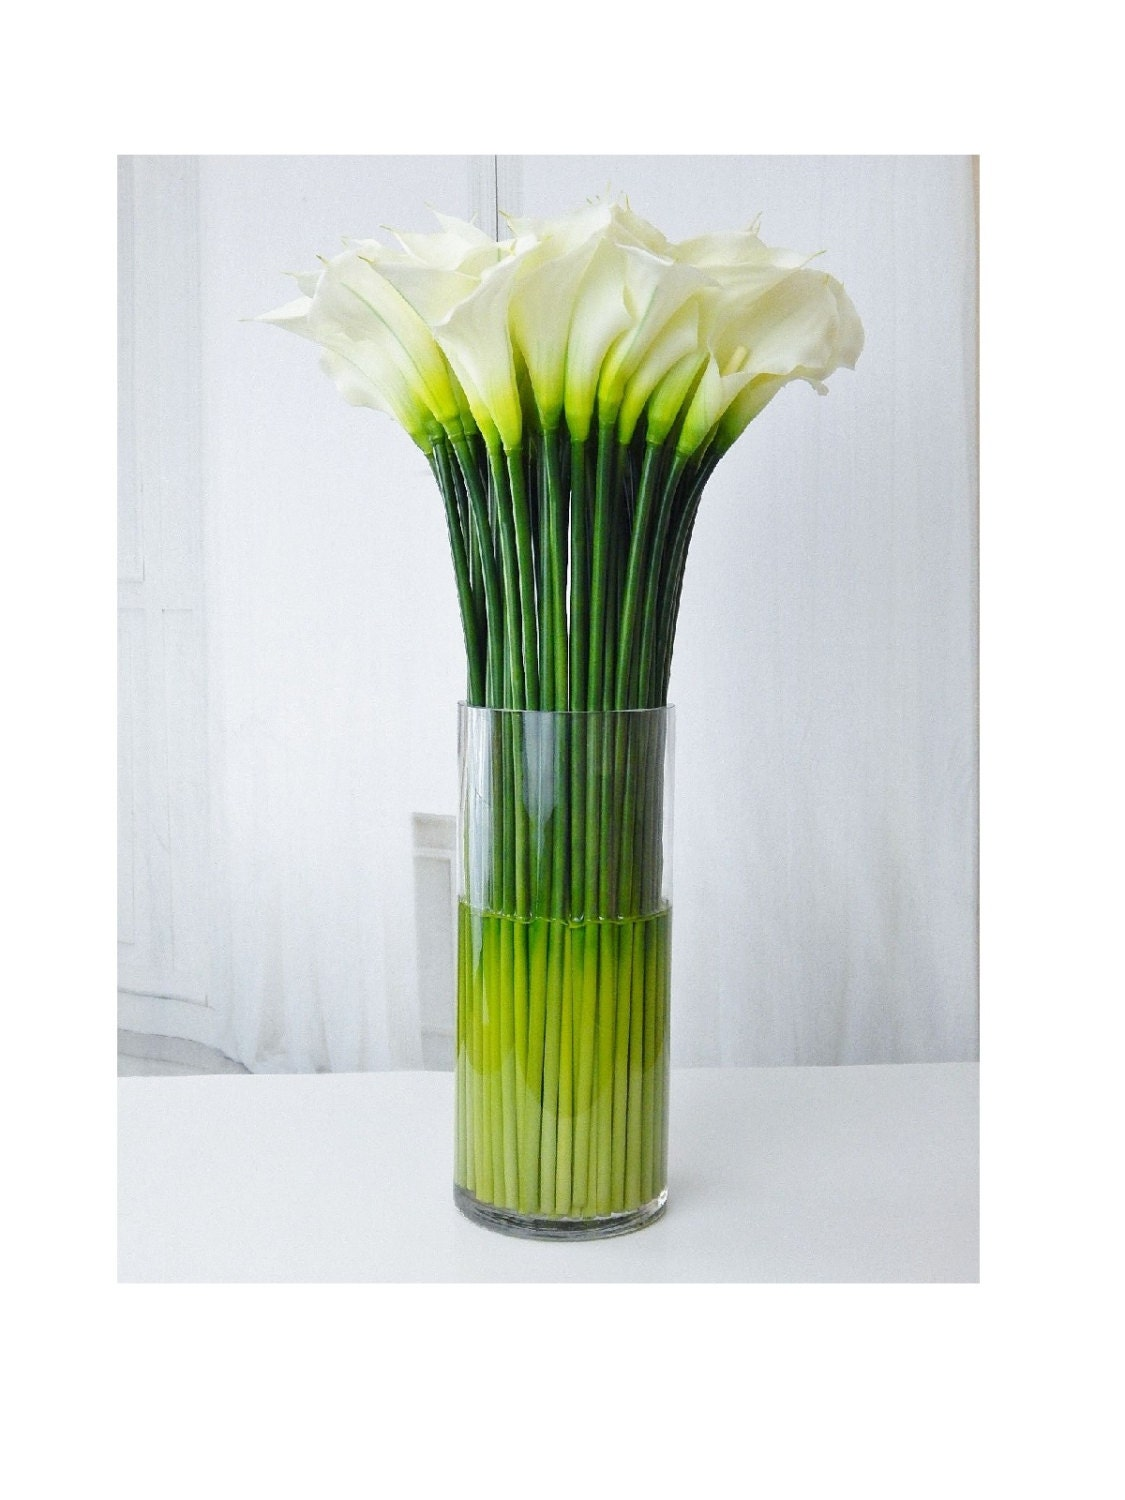 Largetall silk modern floral arrangement calla lilylilies largetall silk modern floral arrangement calla lilylilies white faux water acrylicillusion real touch flowers centerpiece glass reviewsmspy